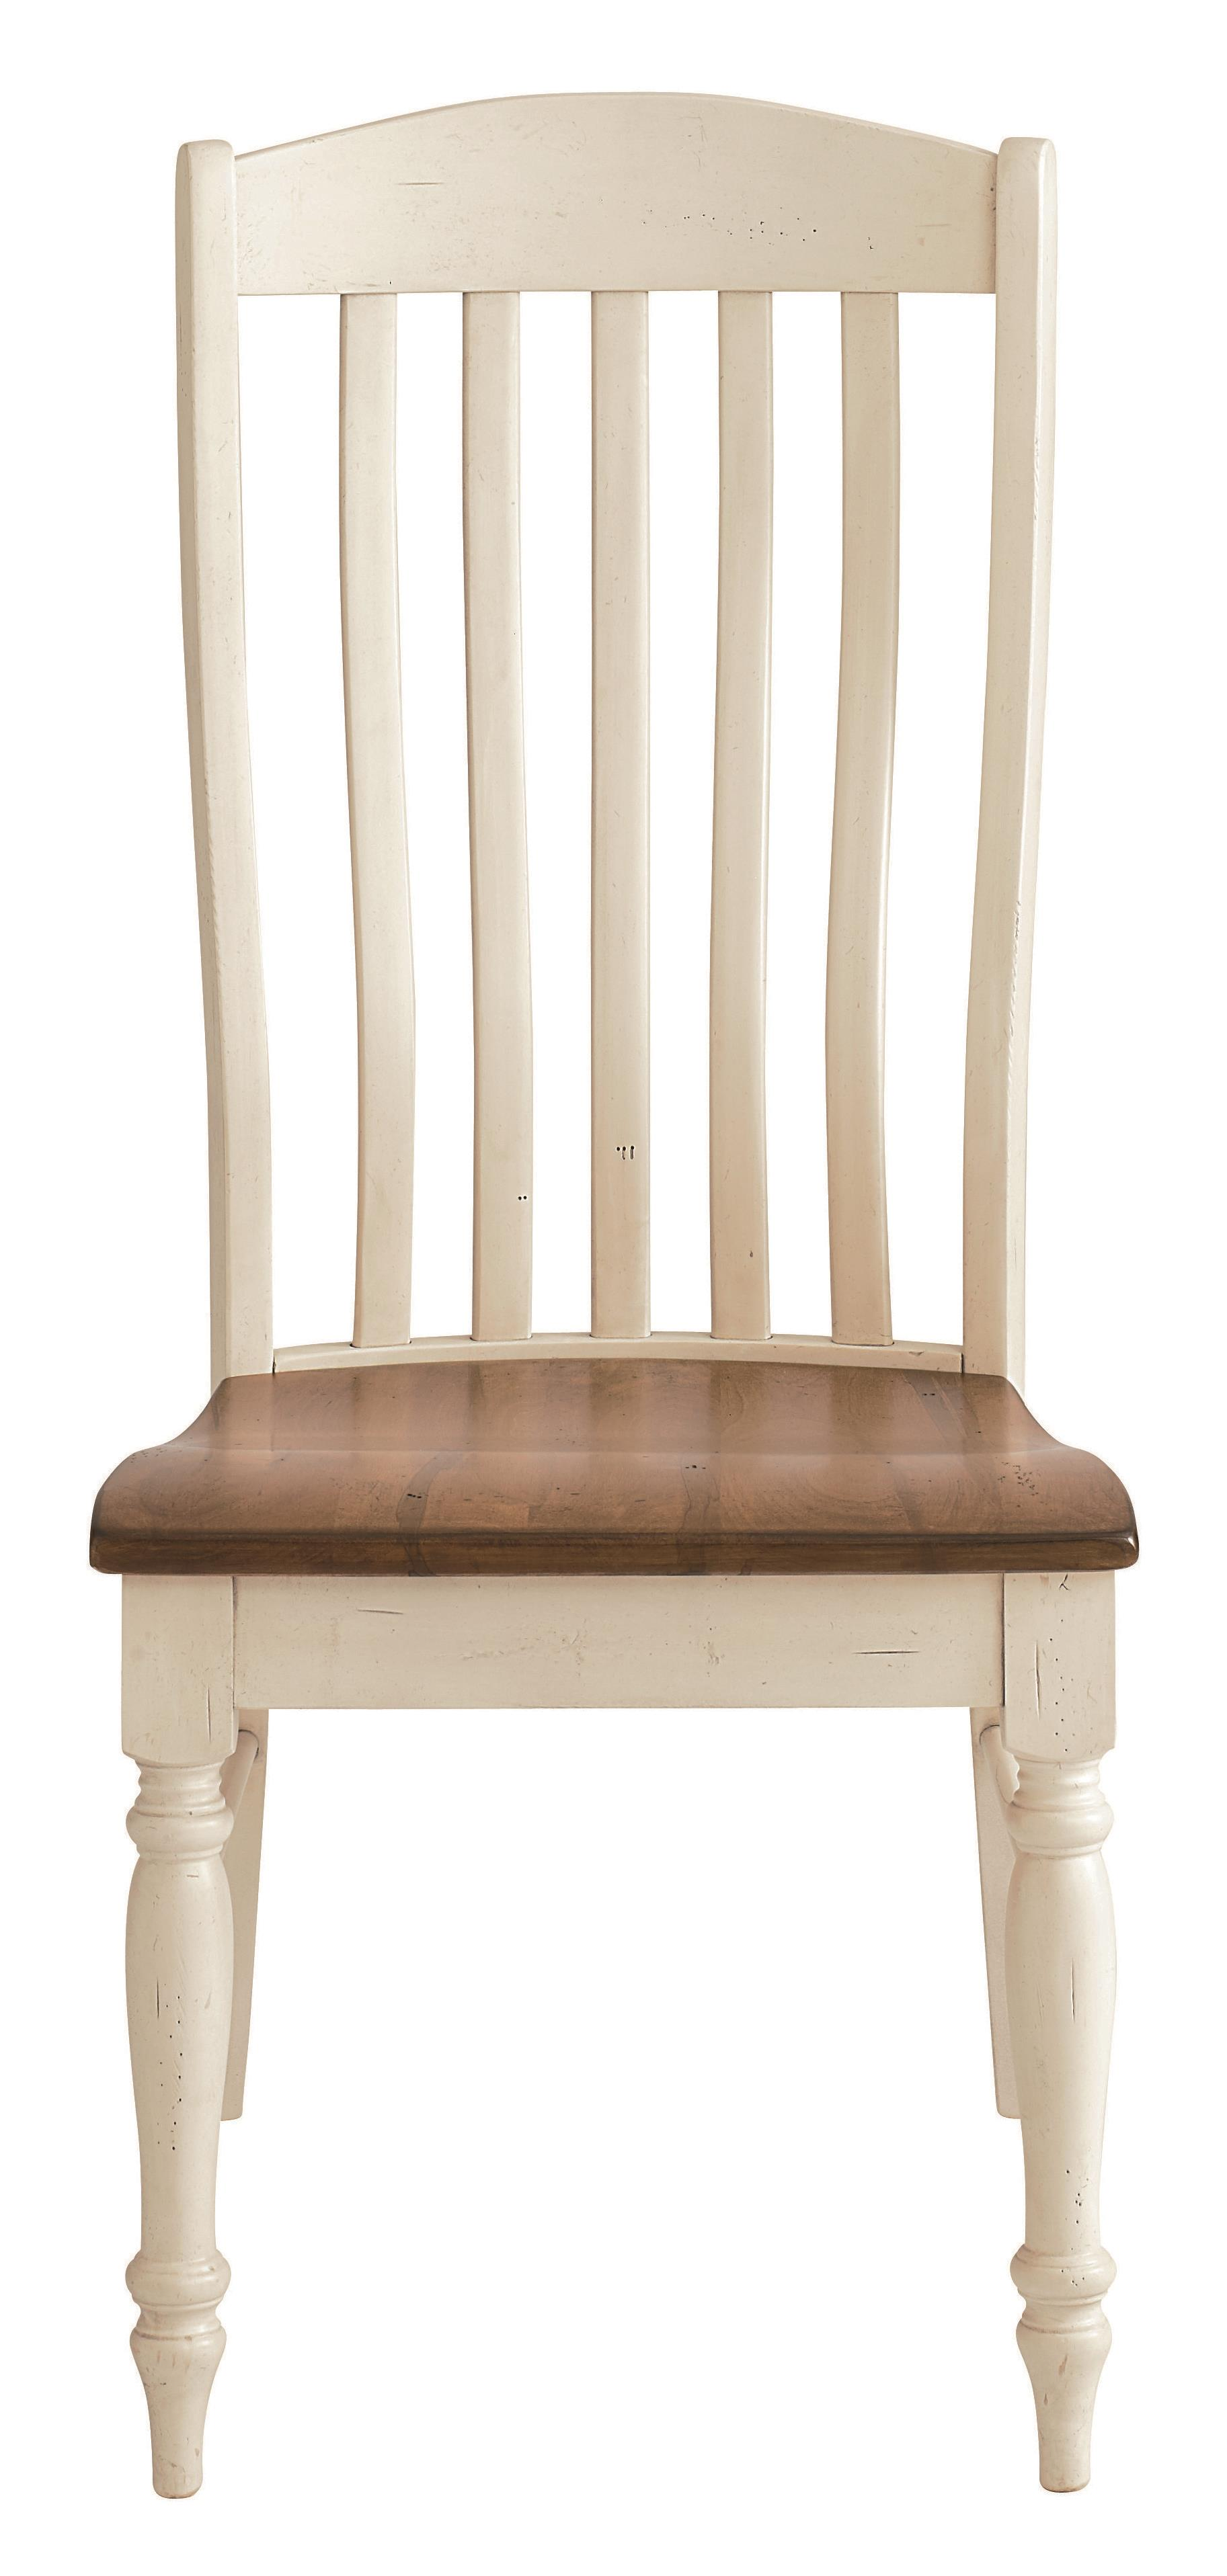 bassett furniture chairs dining chair covers at target bench made 4015 2000 henry side with classic